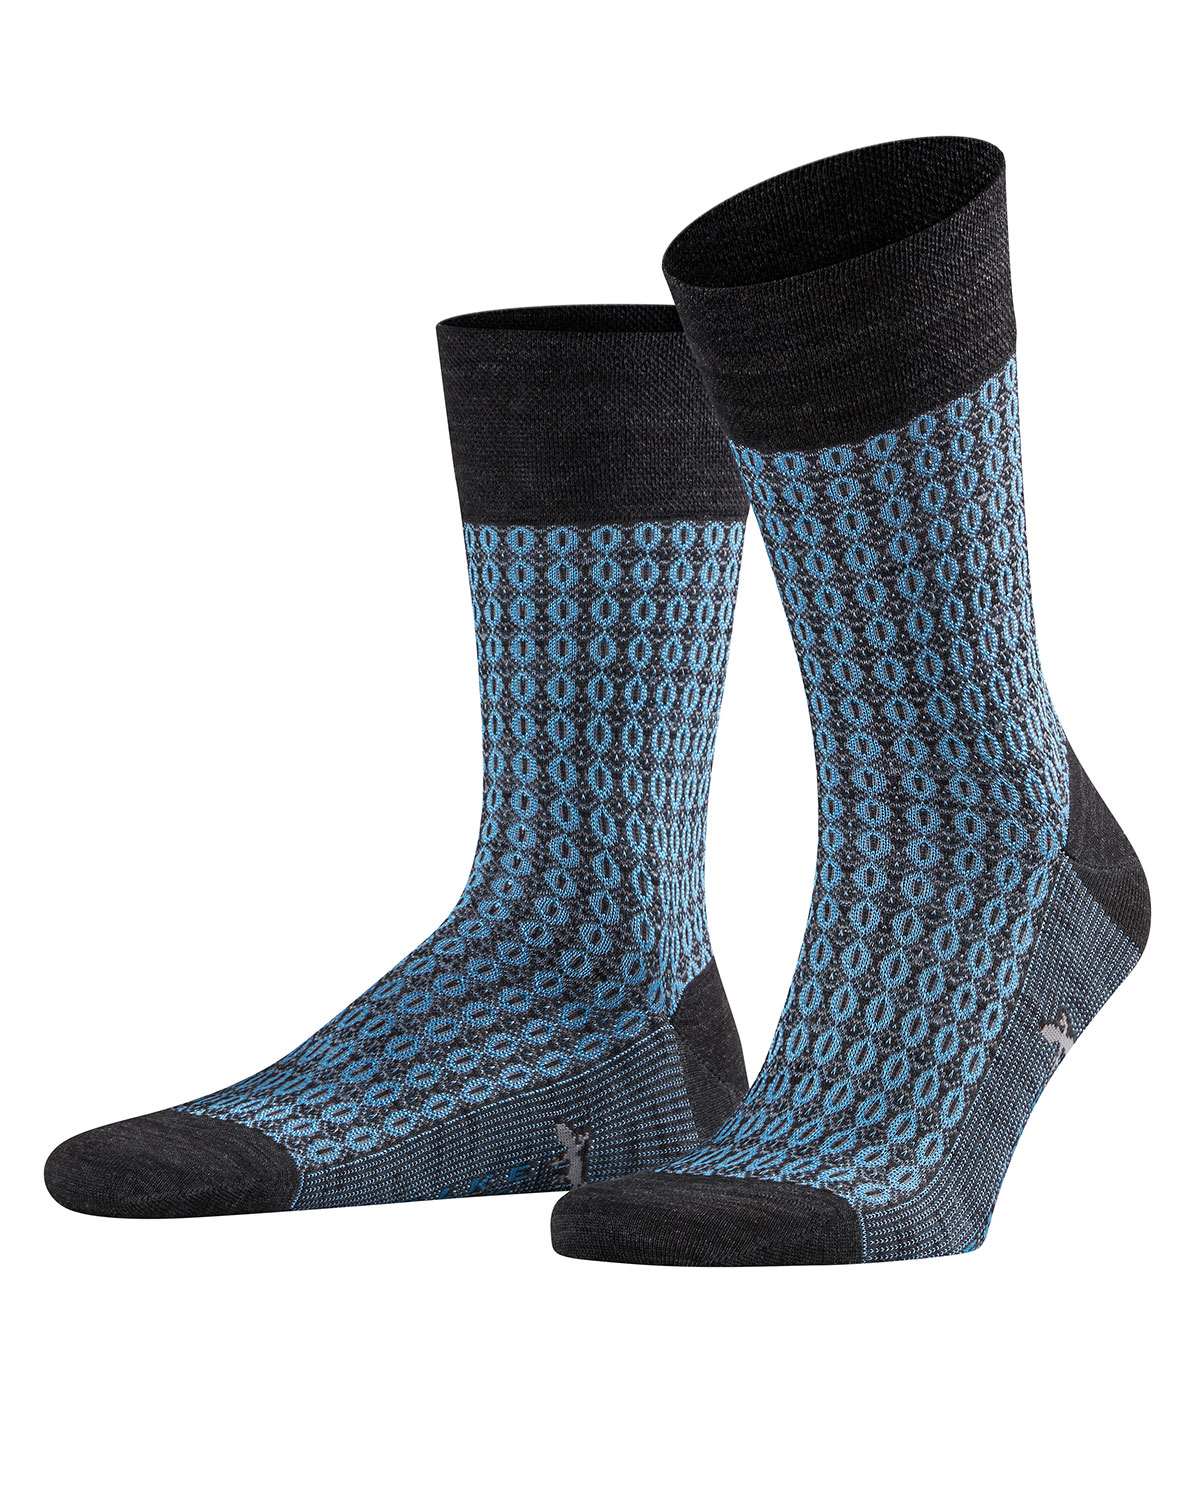 Falke Socks MEN'S LIZZARD EYE SOCKS